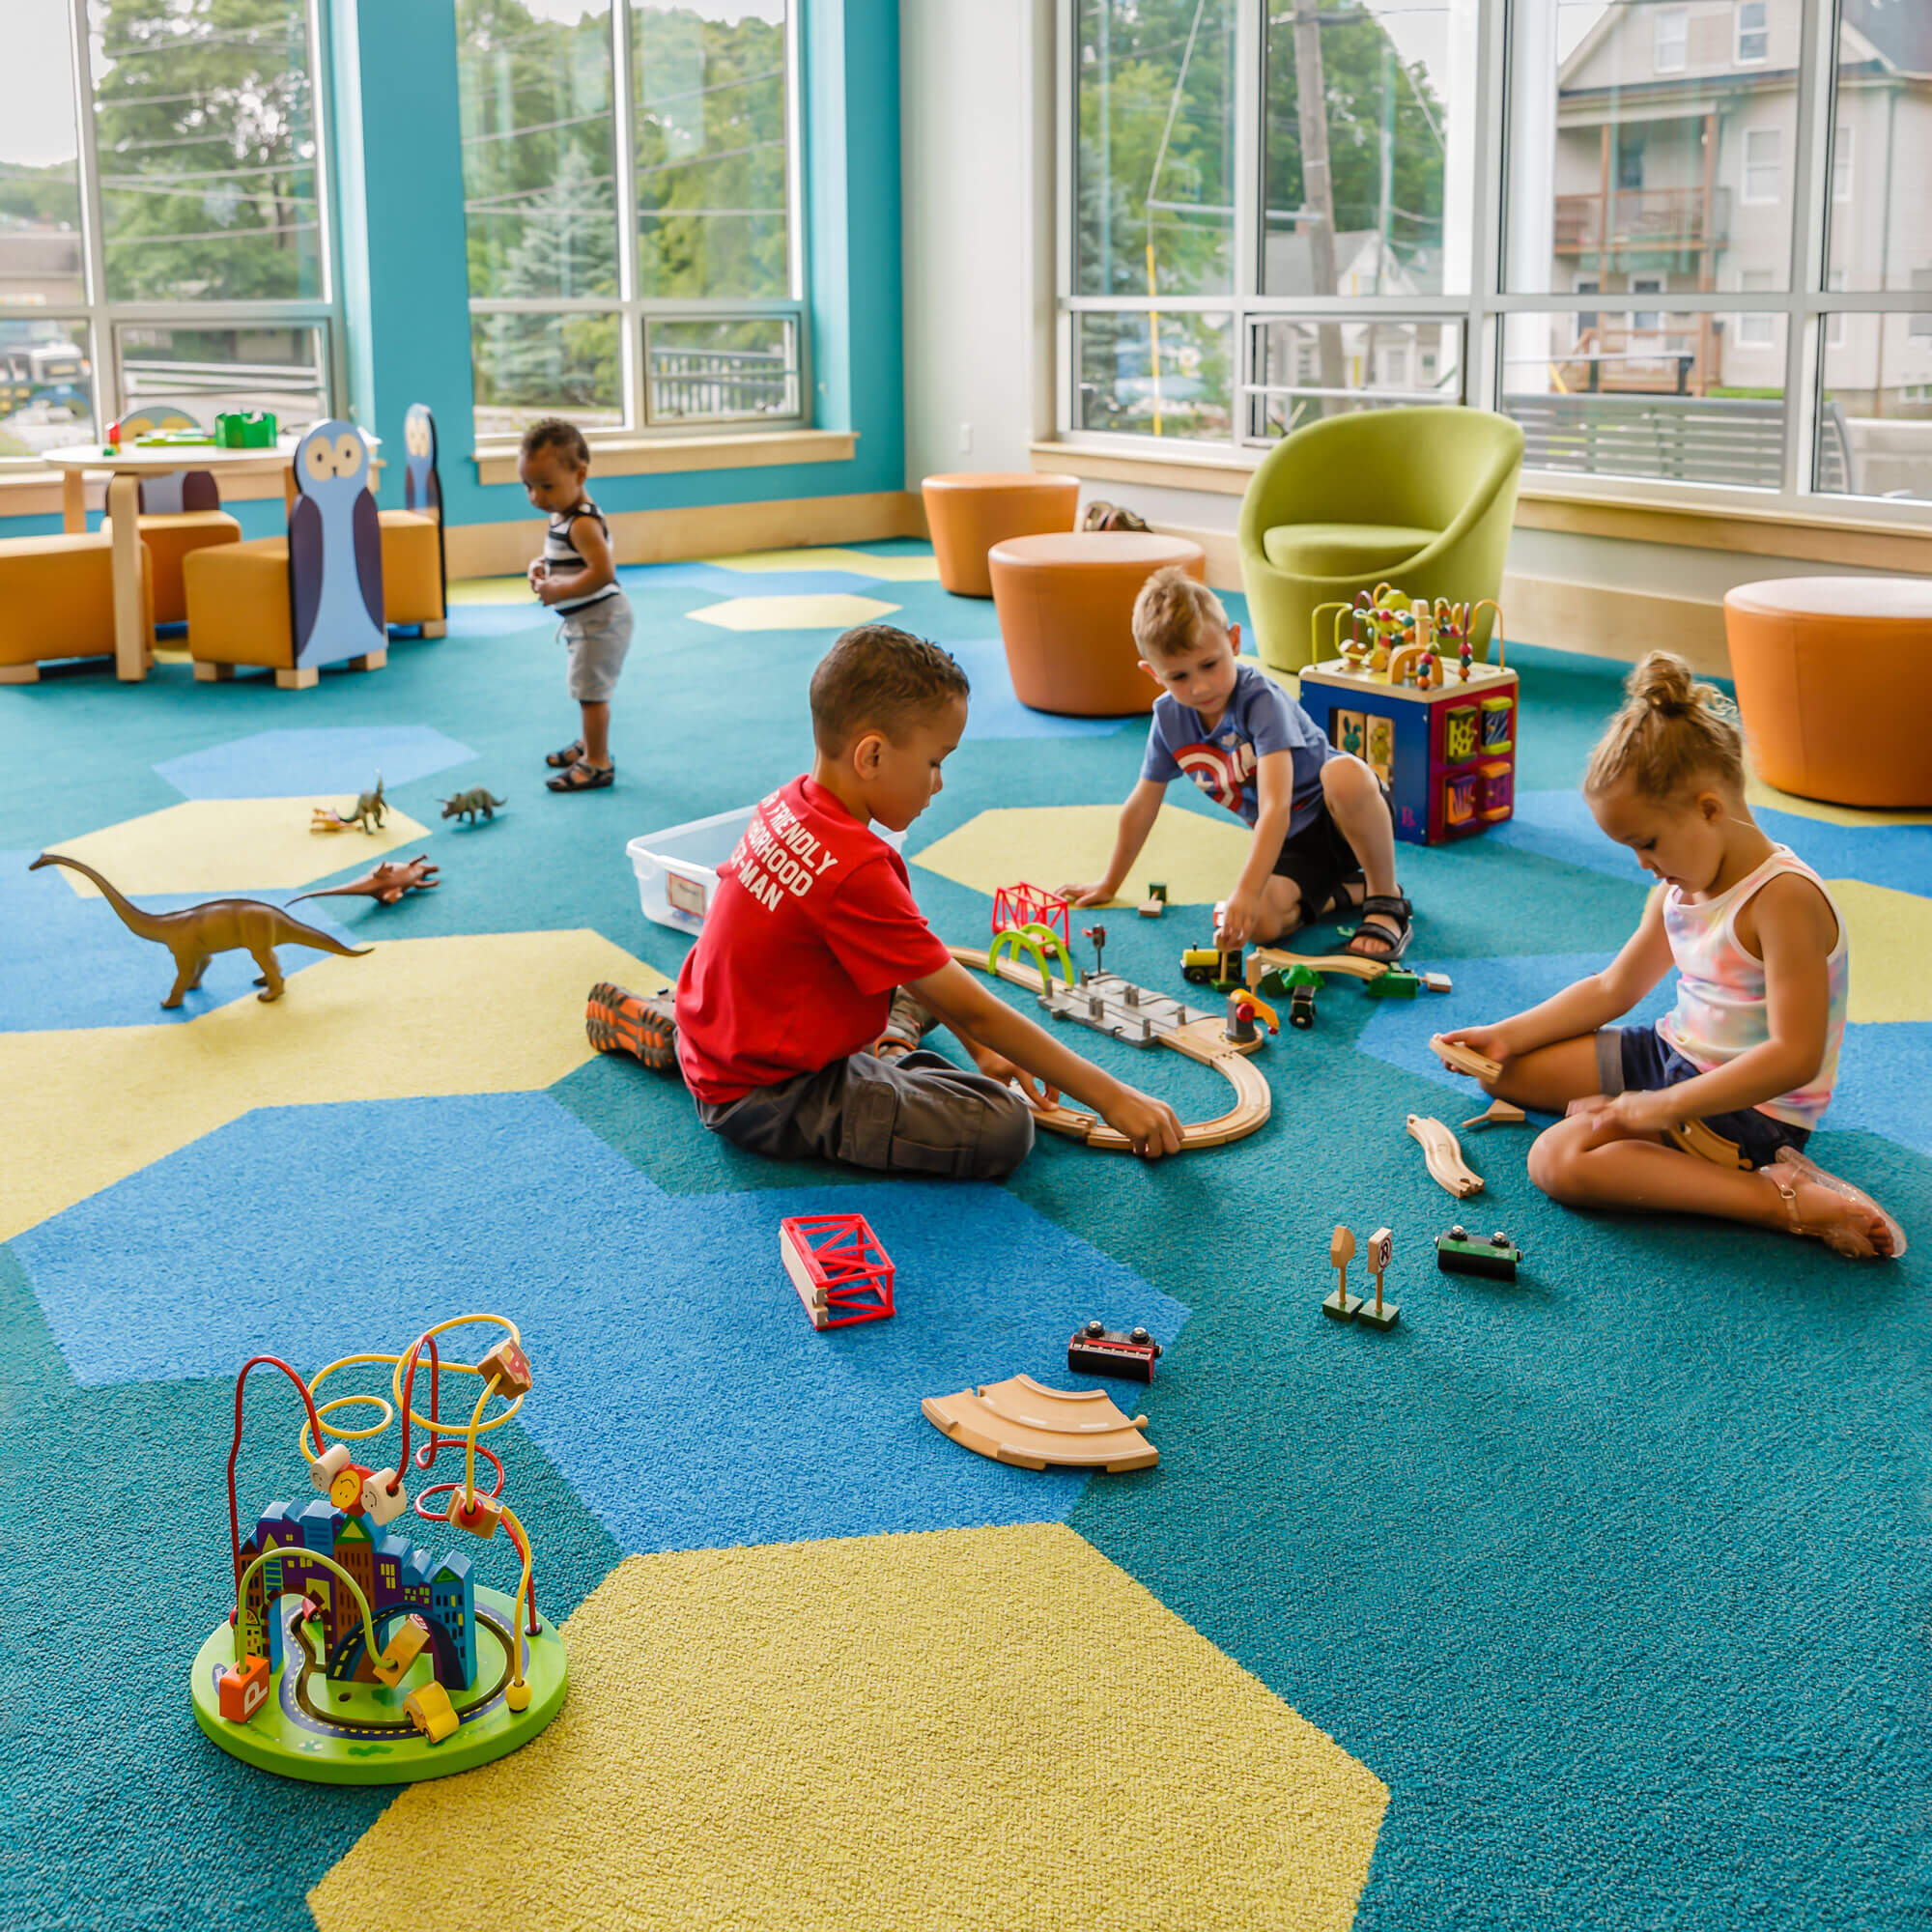 Children playing with toys on a green, blue, and teal carpet with green chairs and orange tables in the background.